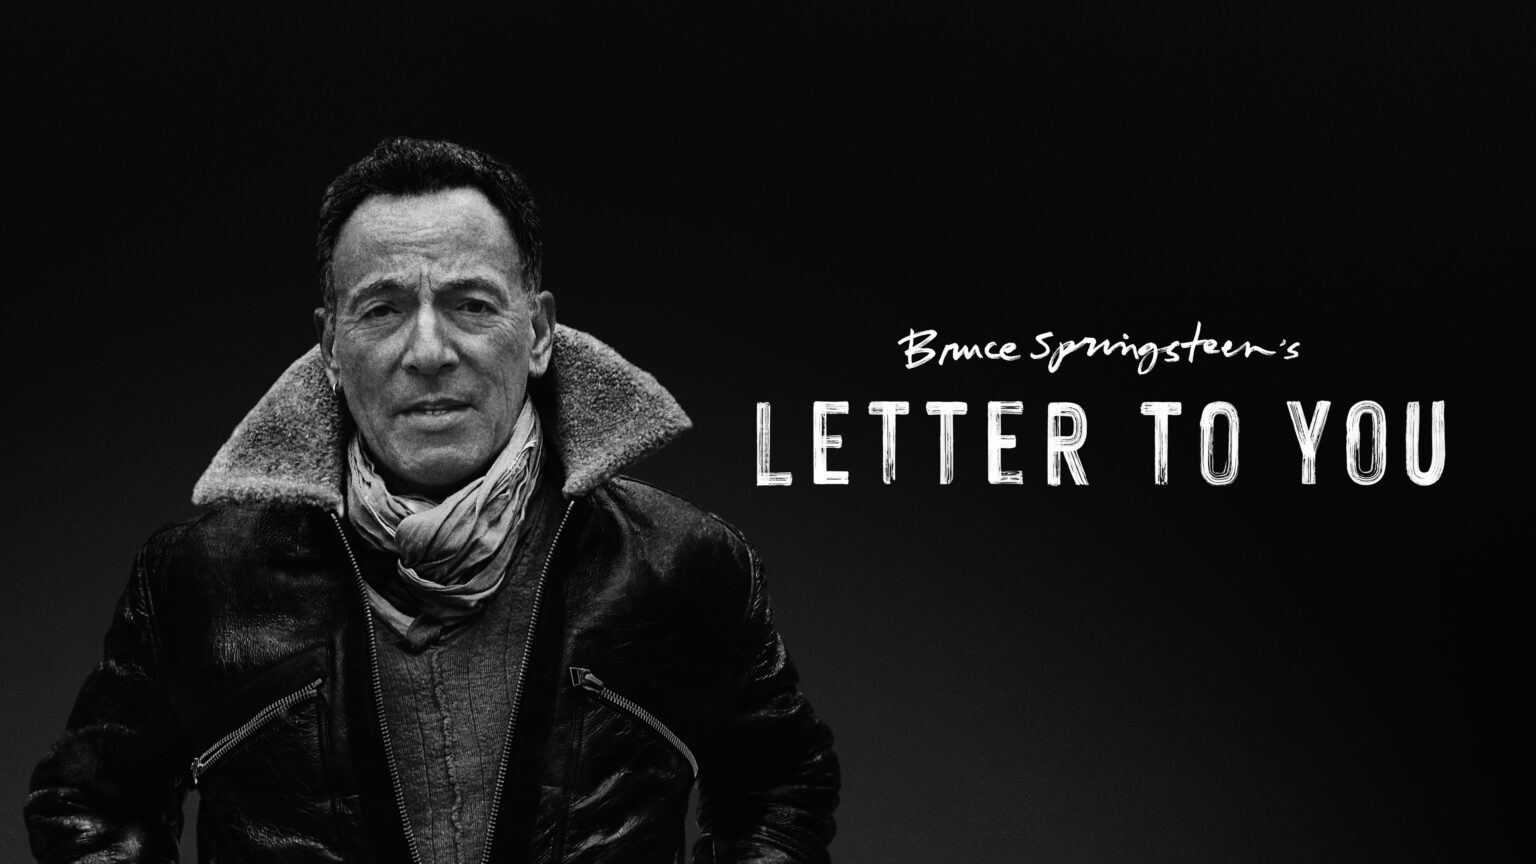 Bruce Springsteen 'Letter To You' debuts October 23